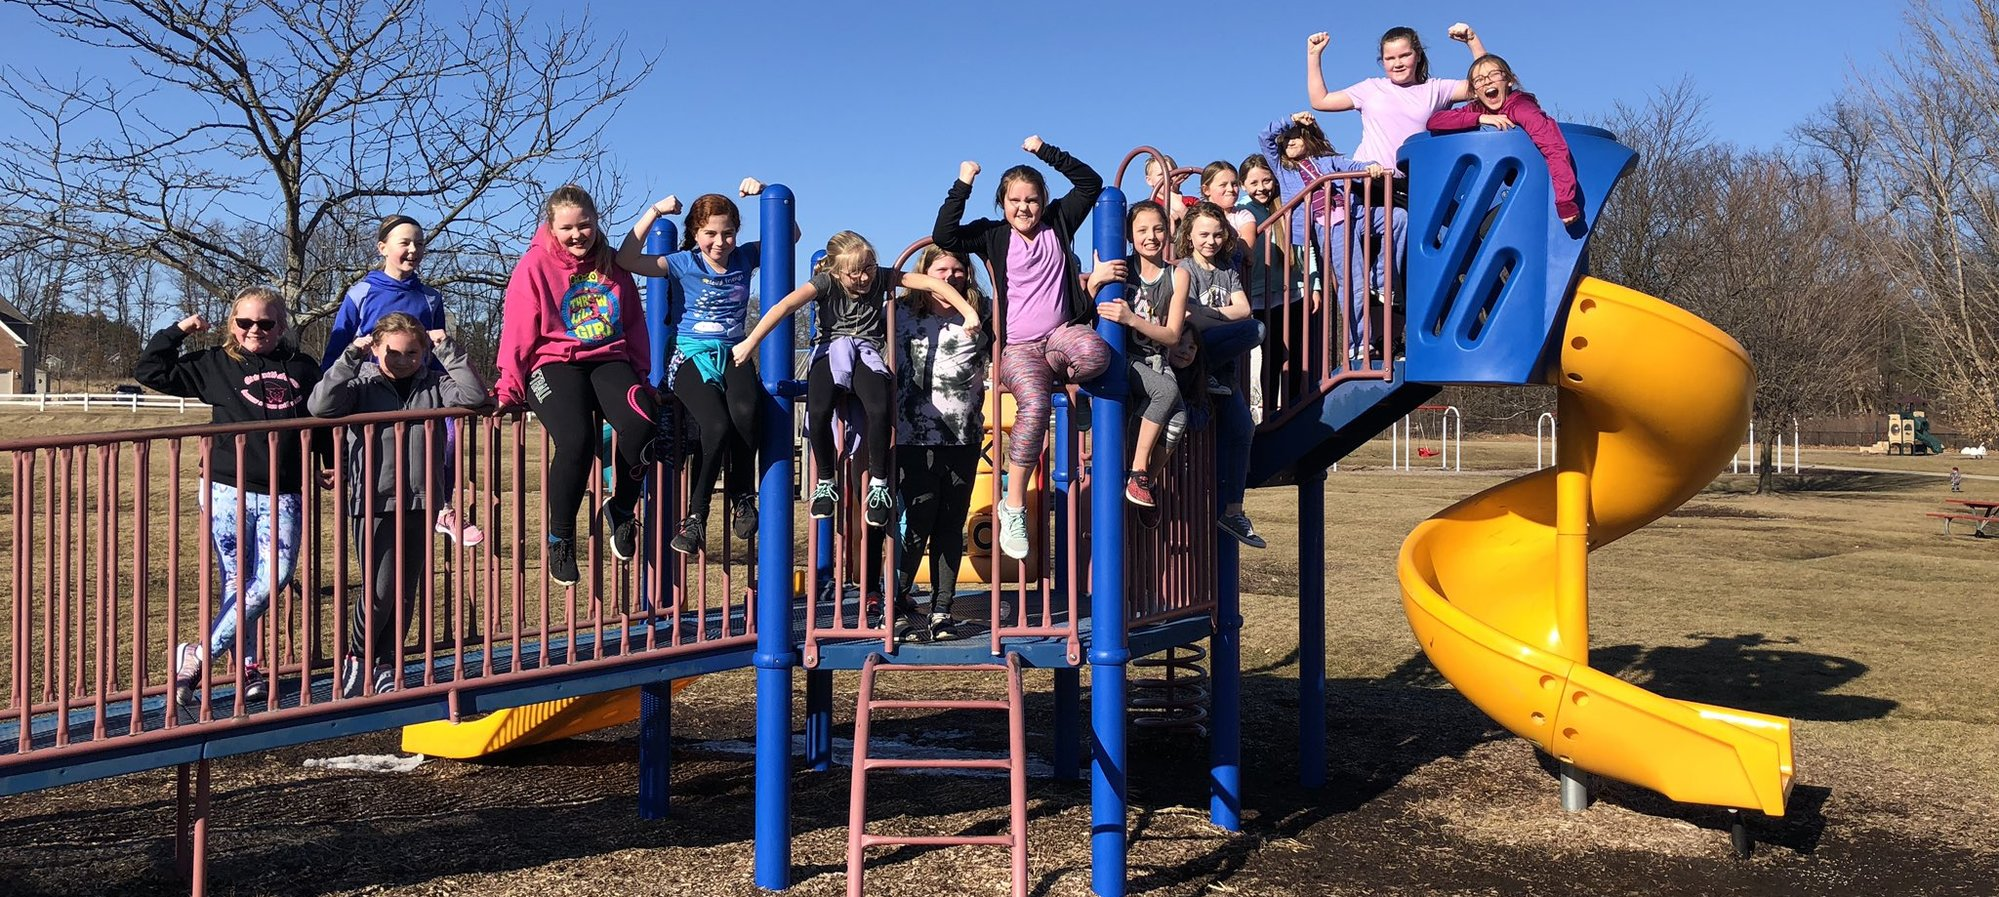 Patterson Girls Running Club posing on the play structure